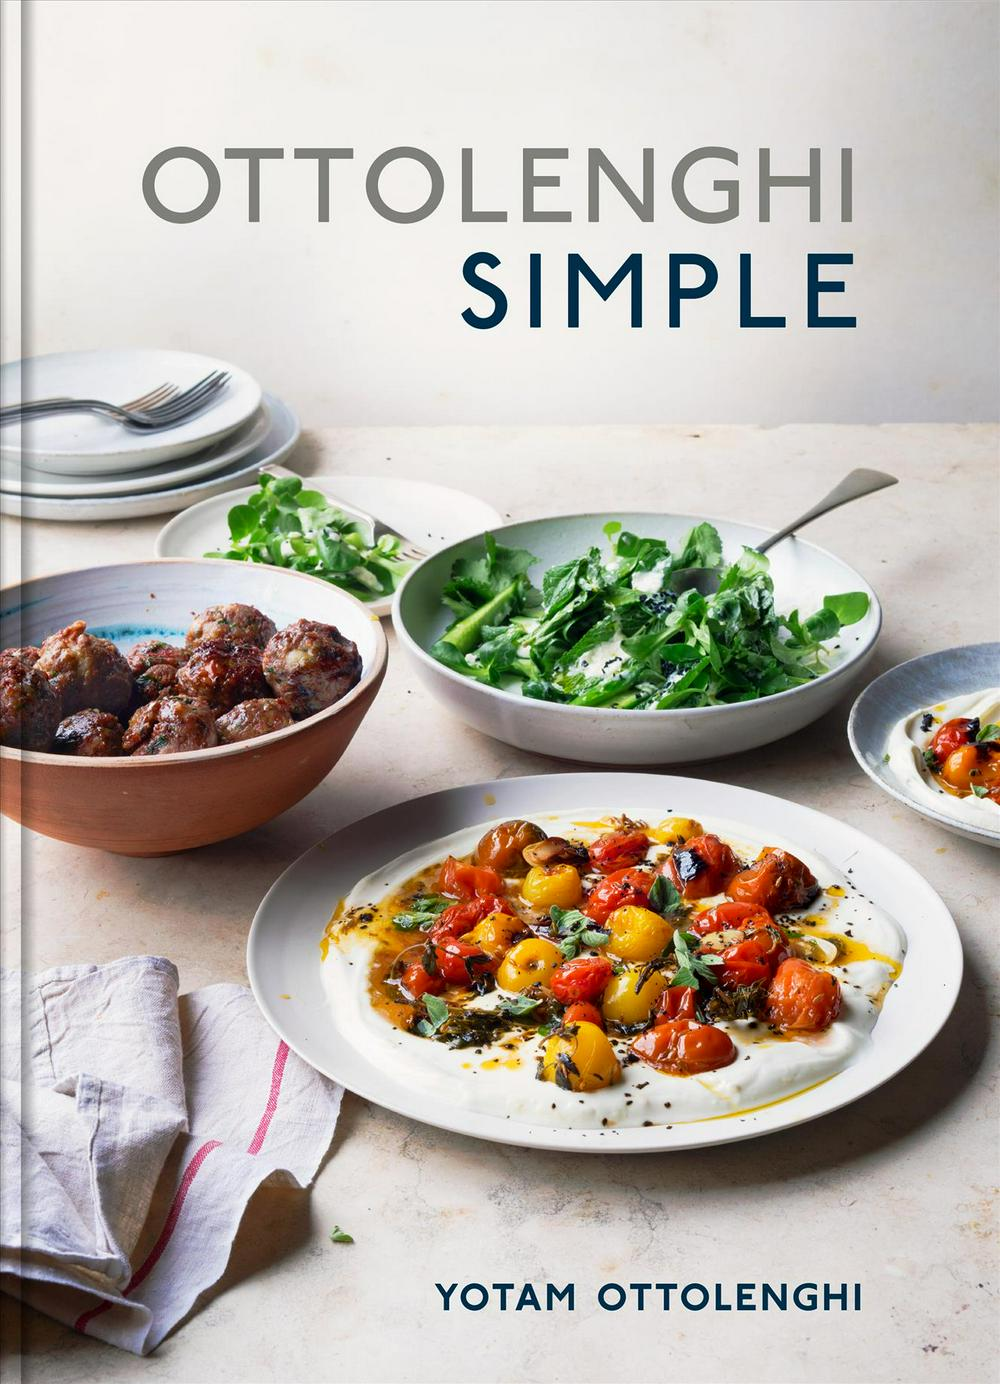 Ottolenghi Simple: A Cookbook by Yotam Ottolenghi, ISBN: 9781607749165